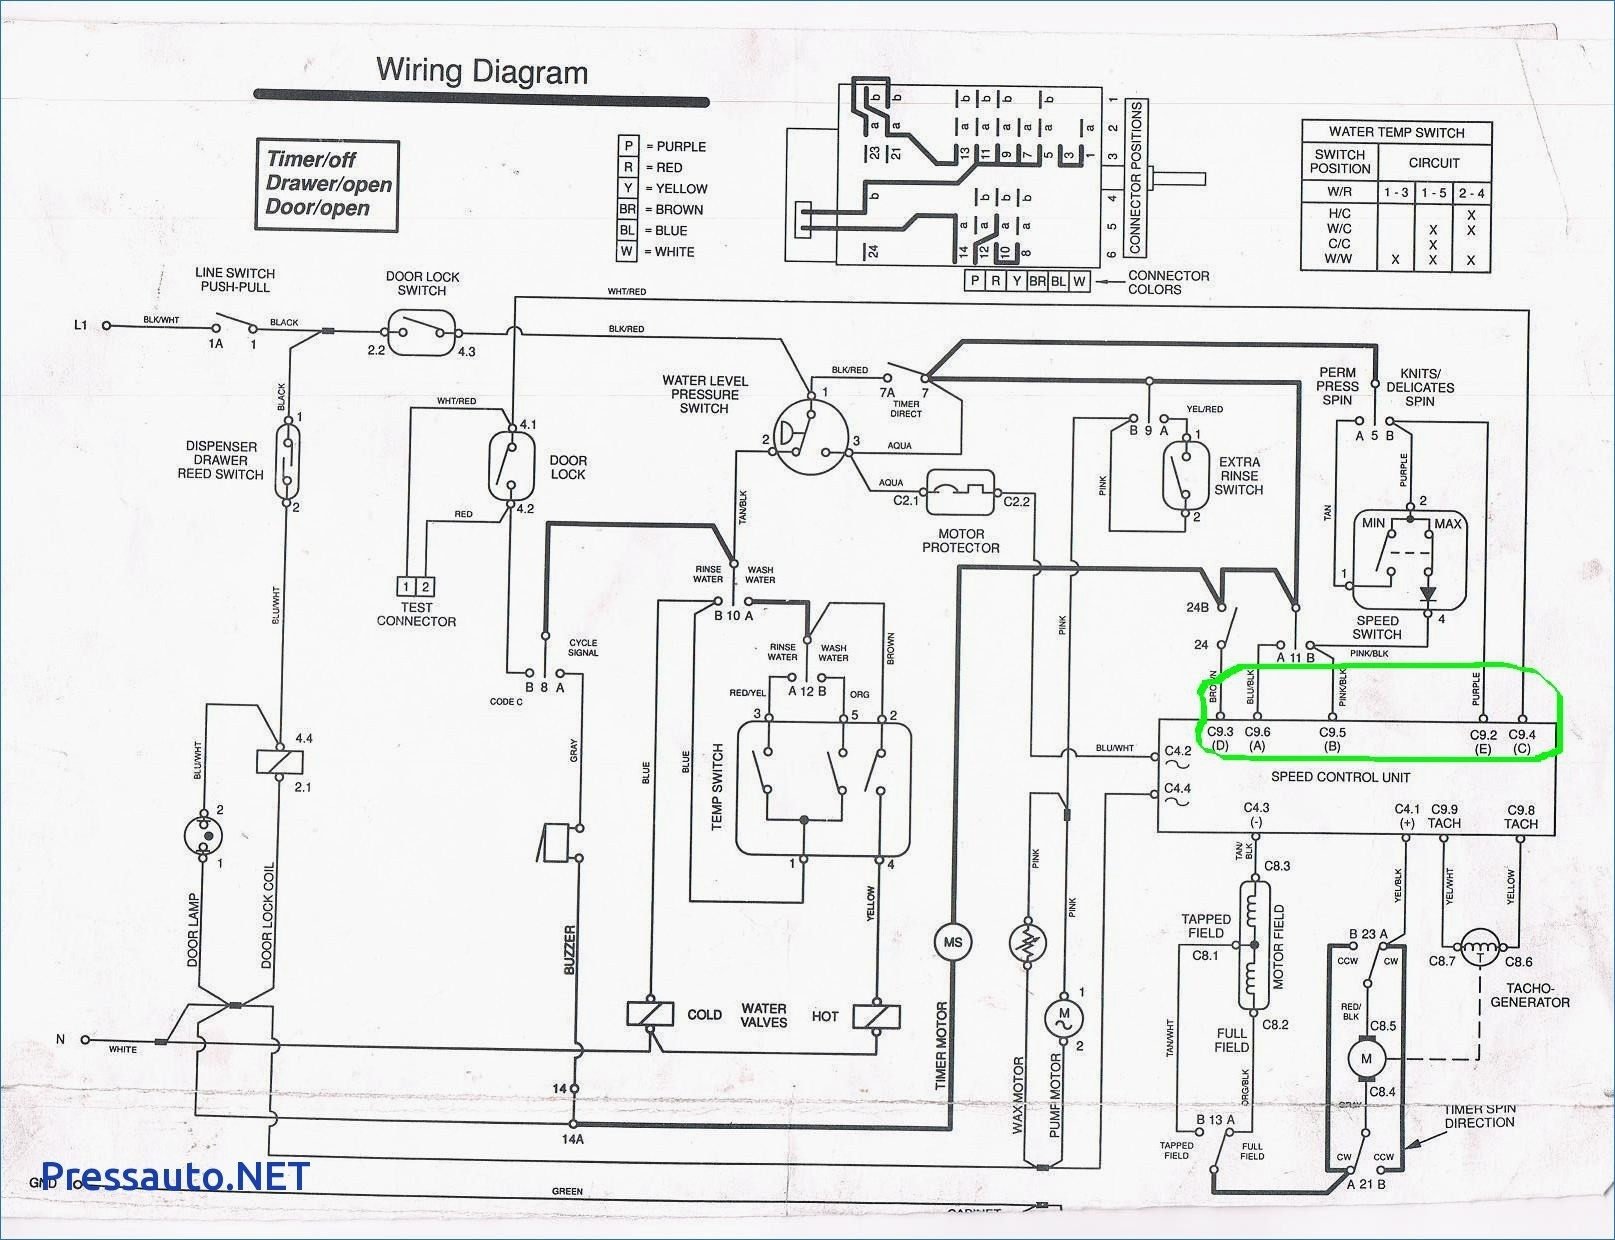 whirlpool washing machine wiring diagram | free wiring diagram wiring diagram for frigidaire washing machine wiring diagram wbse3120b2ww ge washing machine